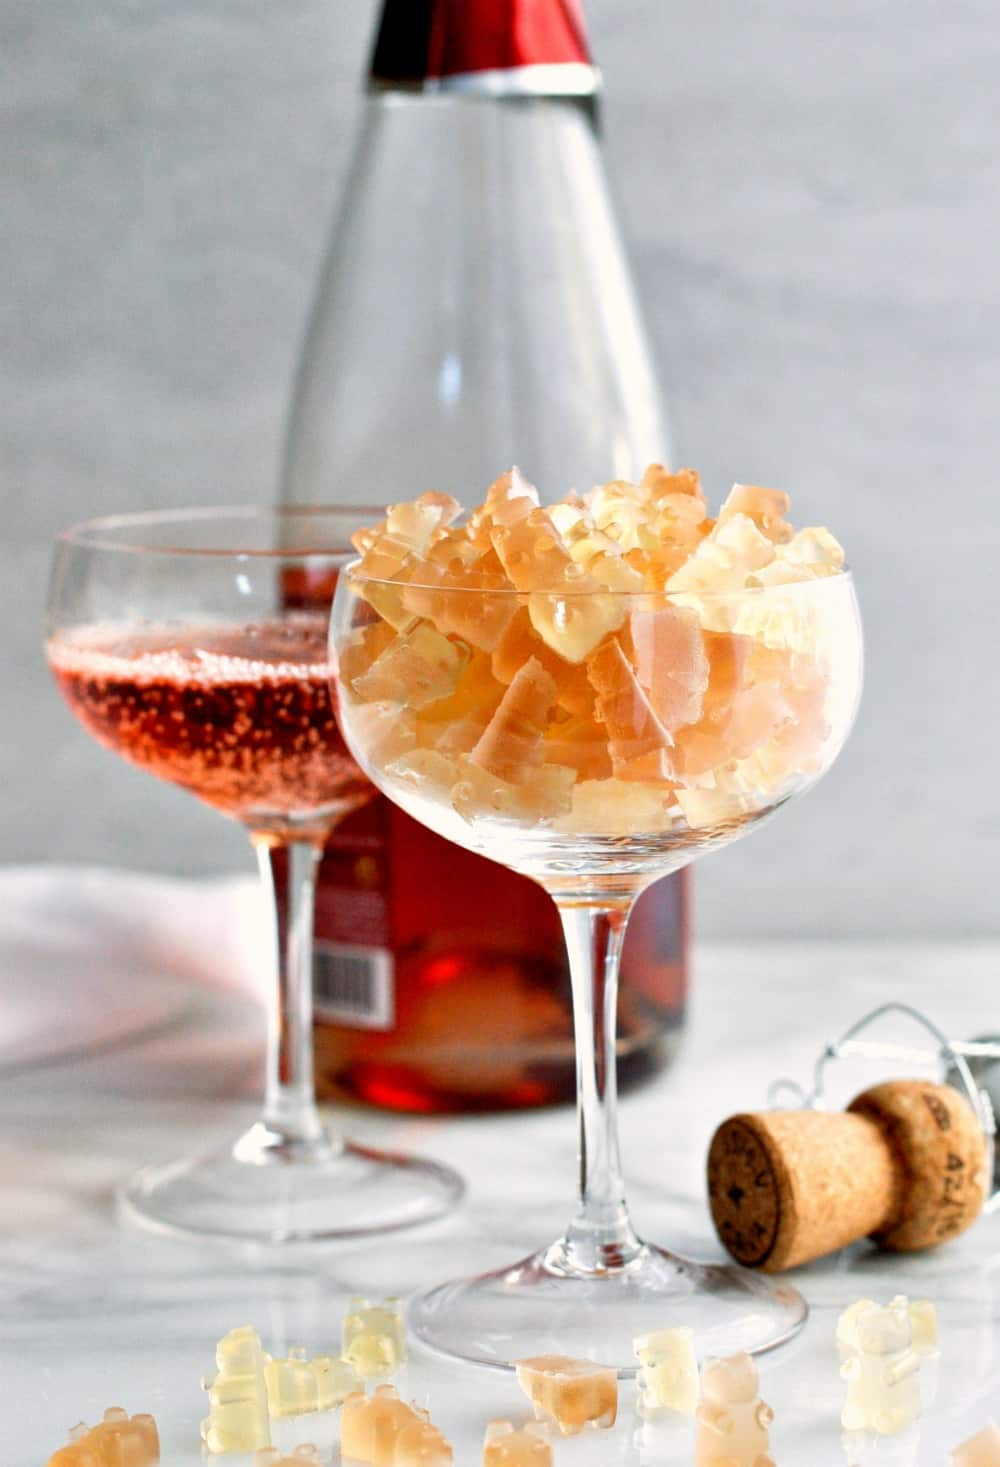 Champagne desserts for New Year's Eve: Champagne Gummy Bears | Pinch and Swirl